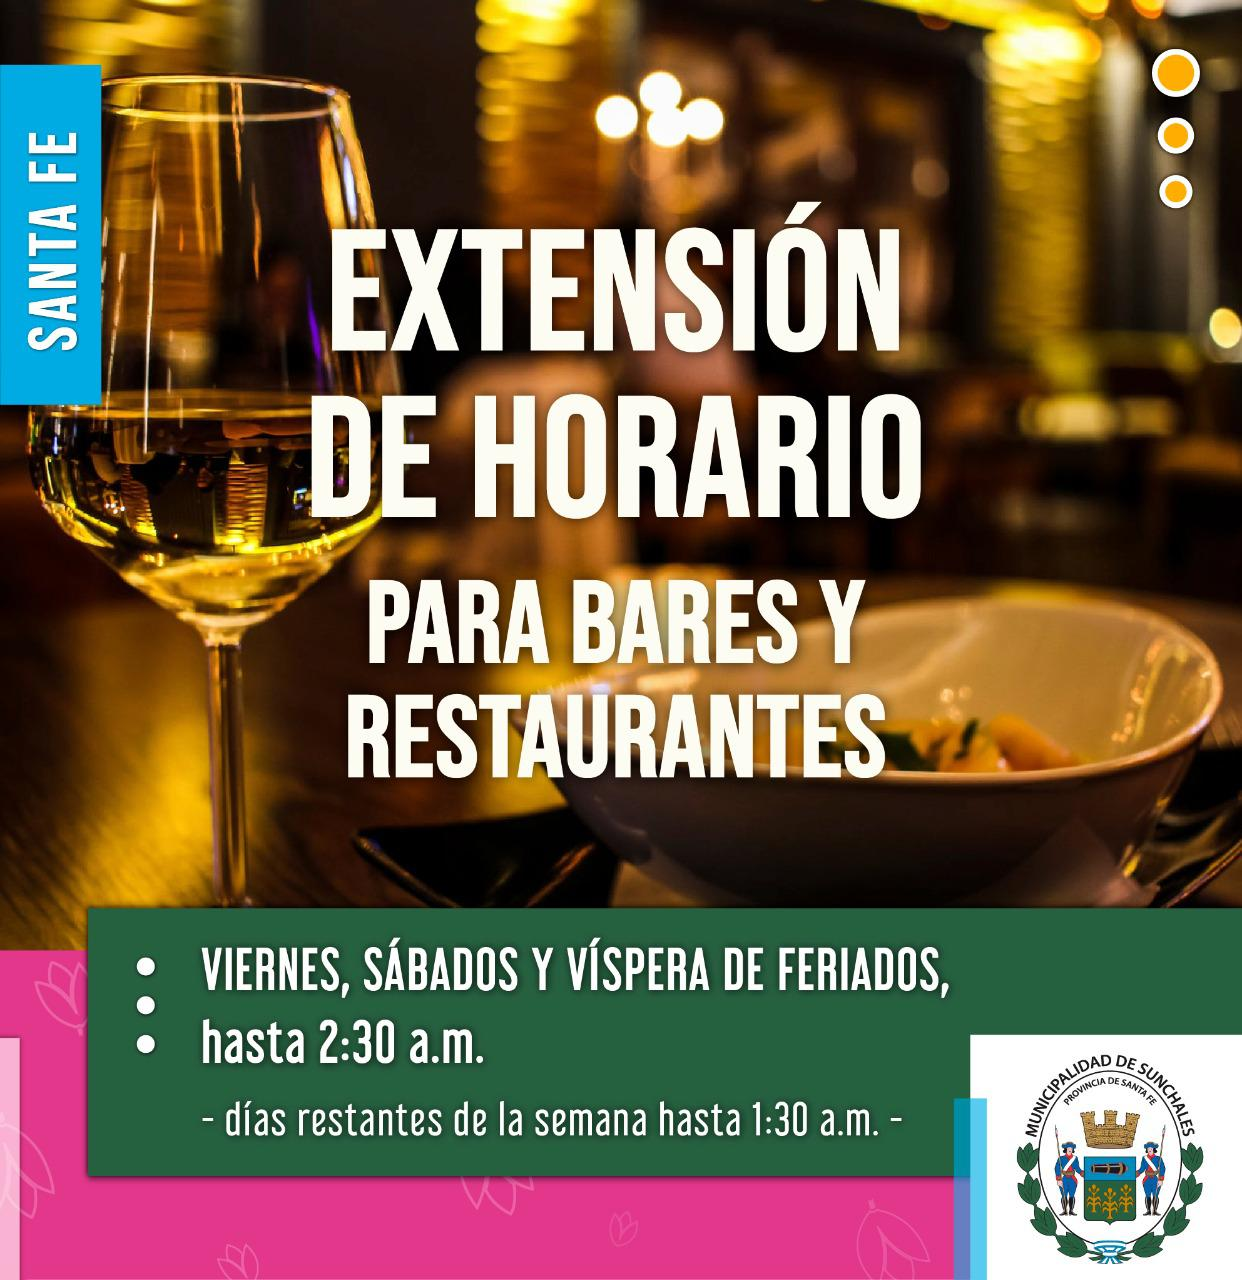 Extension horario bares